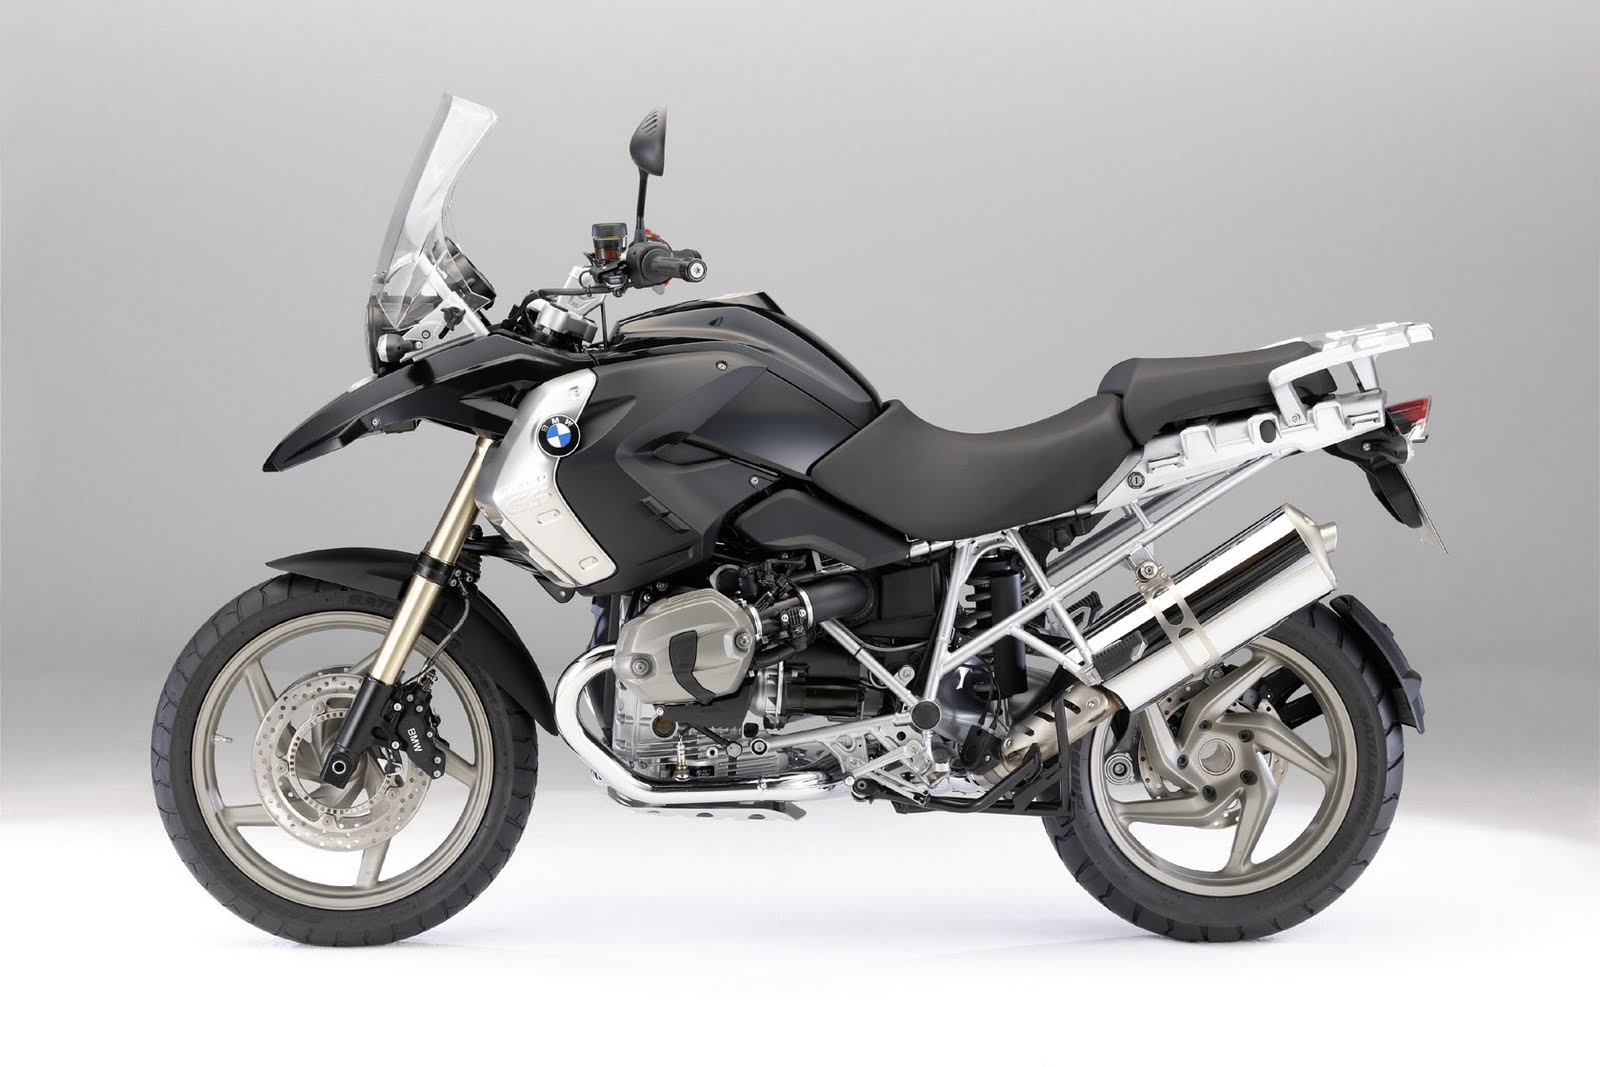 The Best Of Motorcycle: 2010 BMW R1200GS